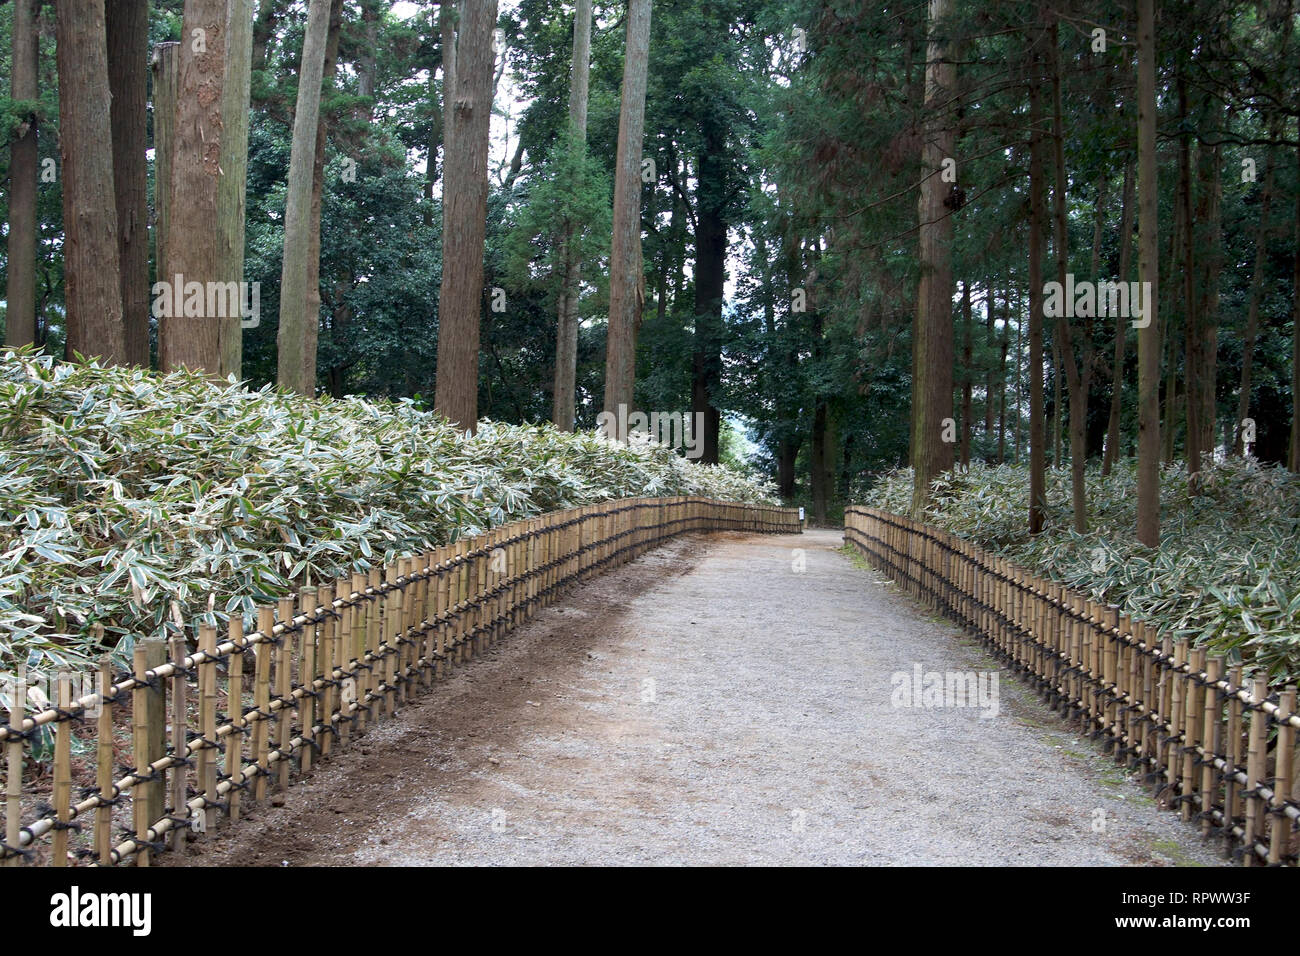 Tall Bamboo Trees Stock Photos & Tall Bamboo Trees Stock